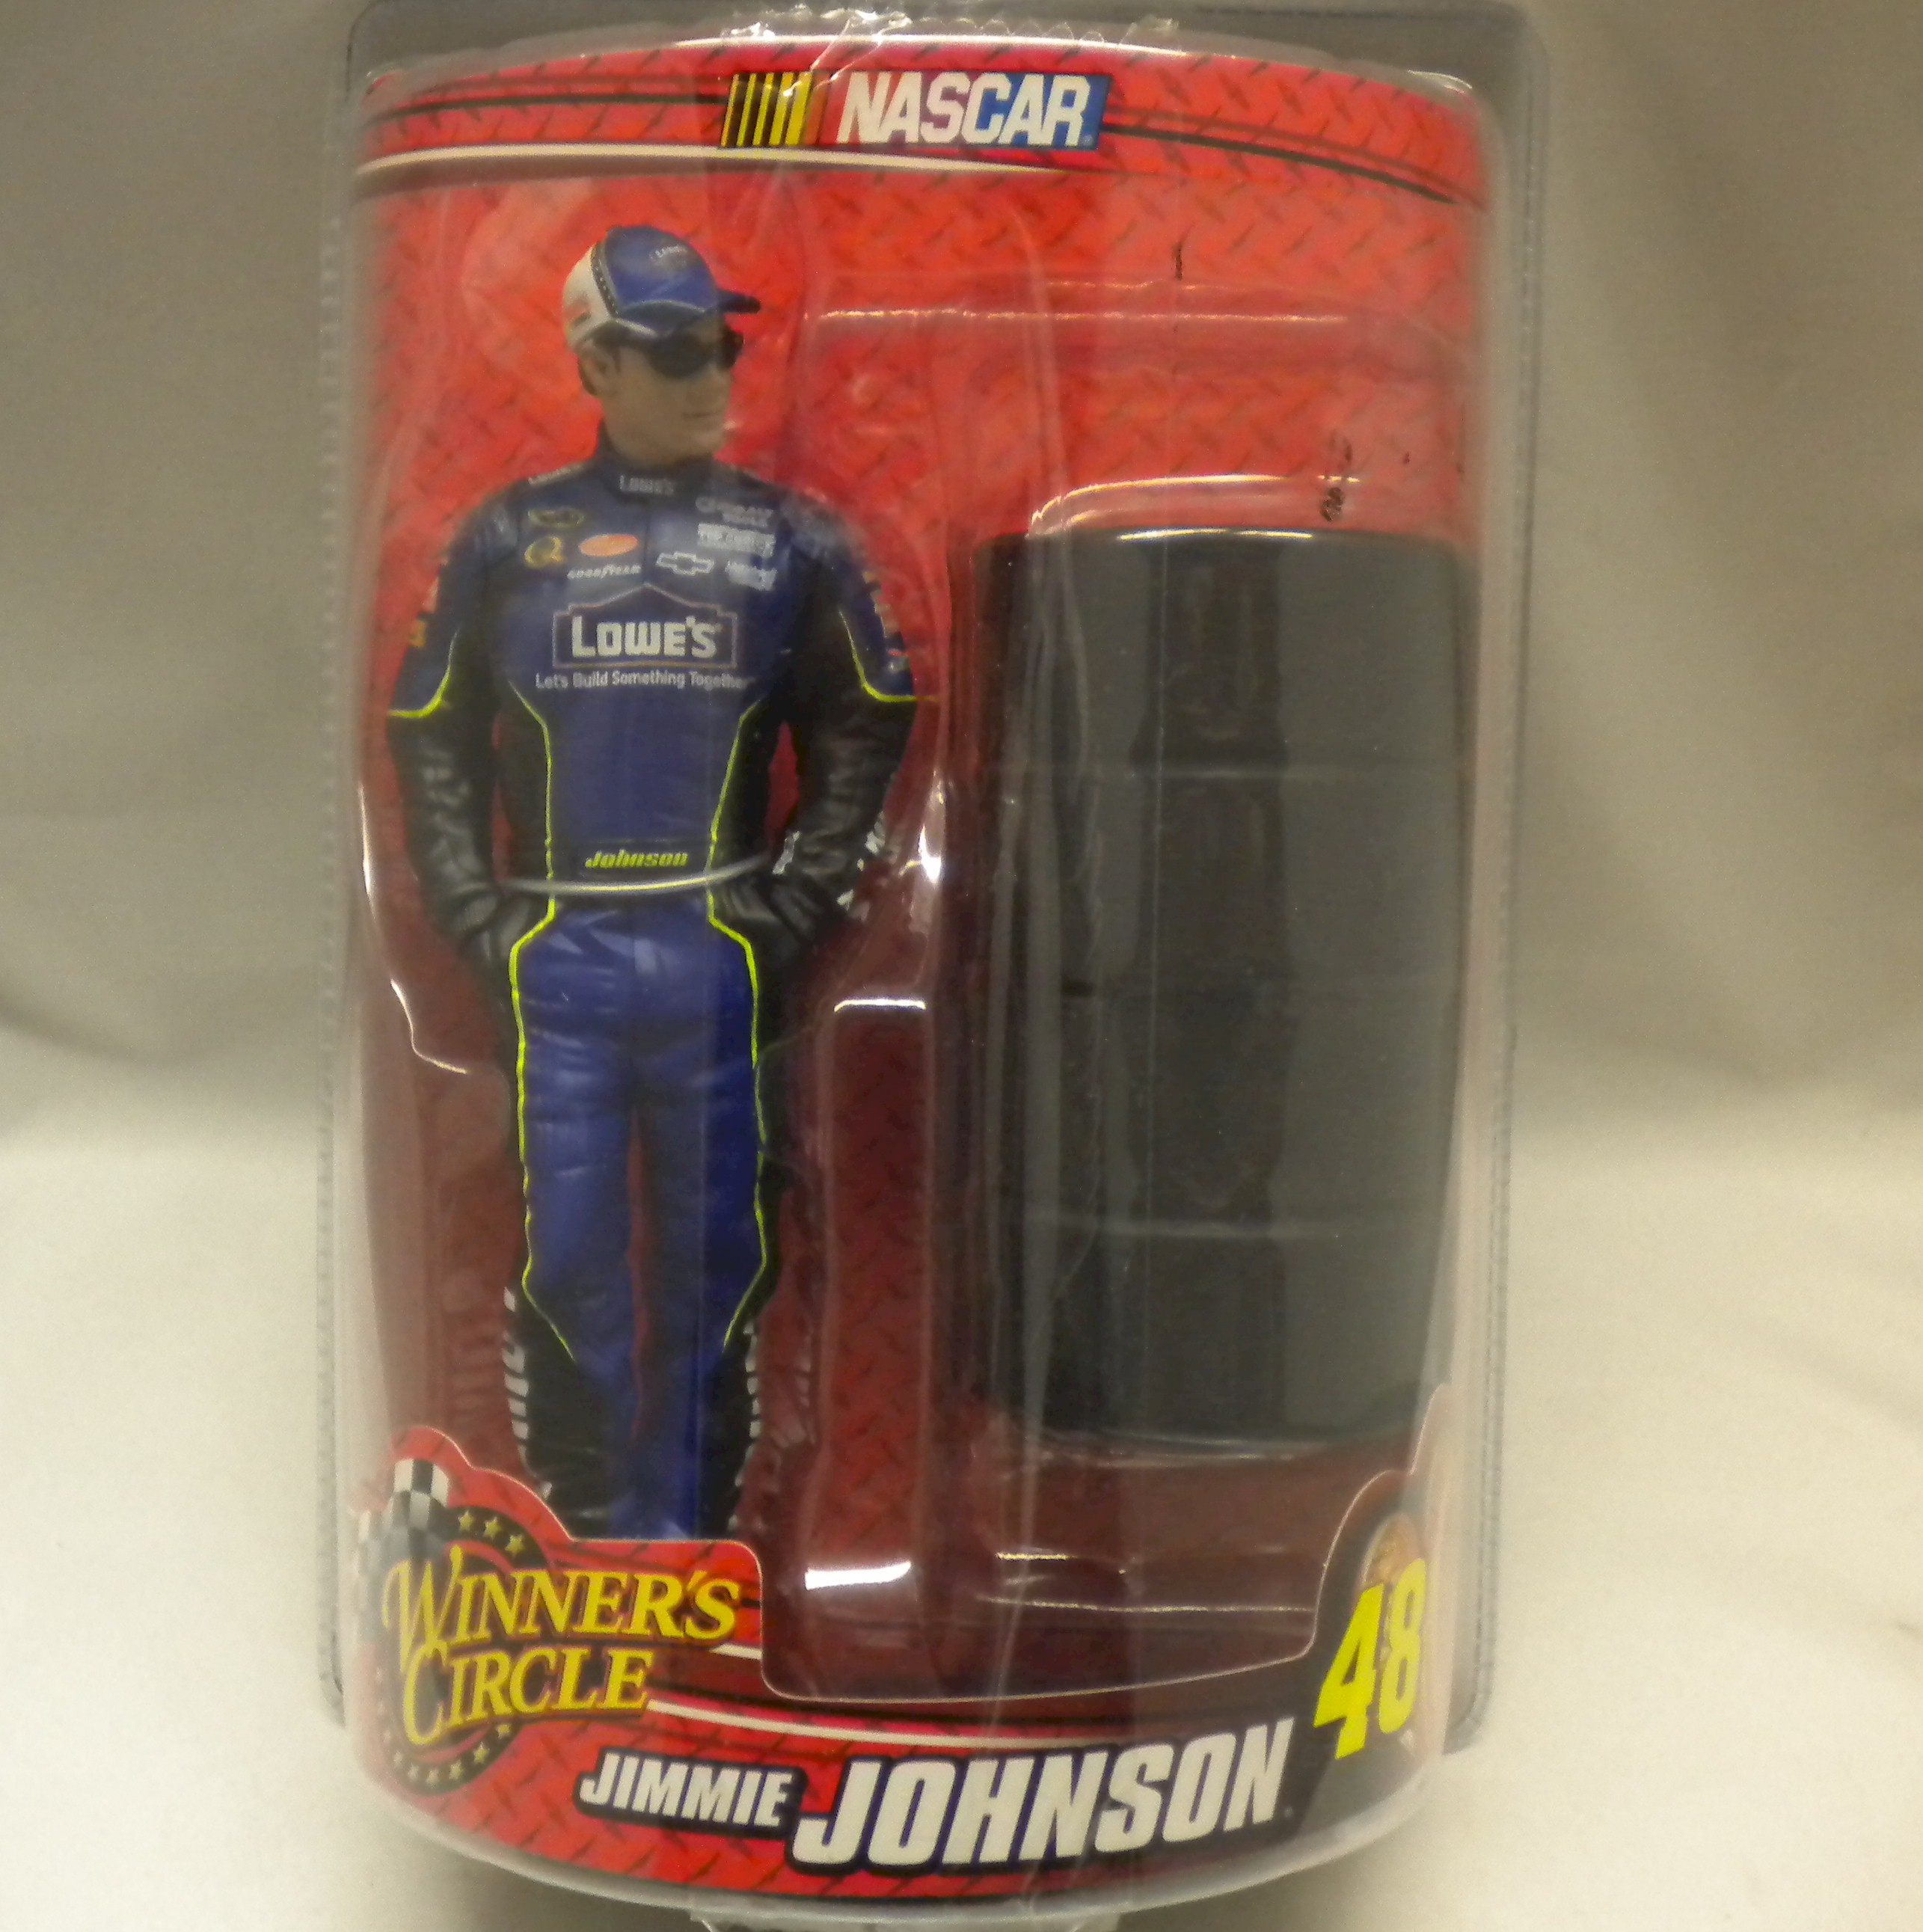 Jimmie Johnson NASCAR Collectible Figurine